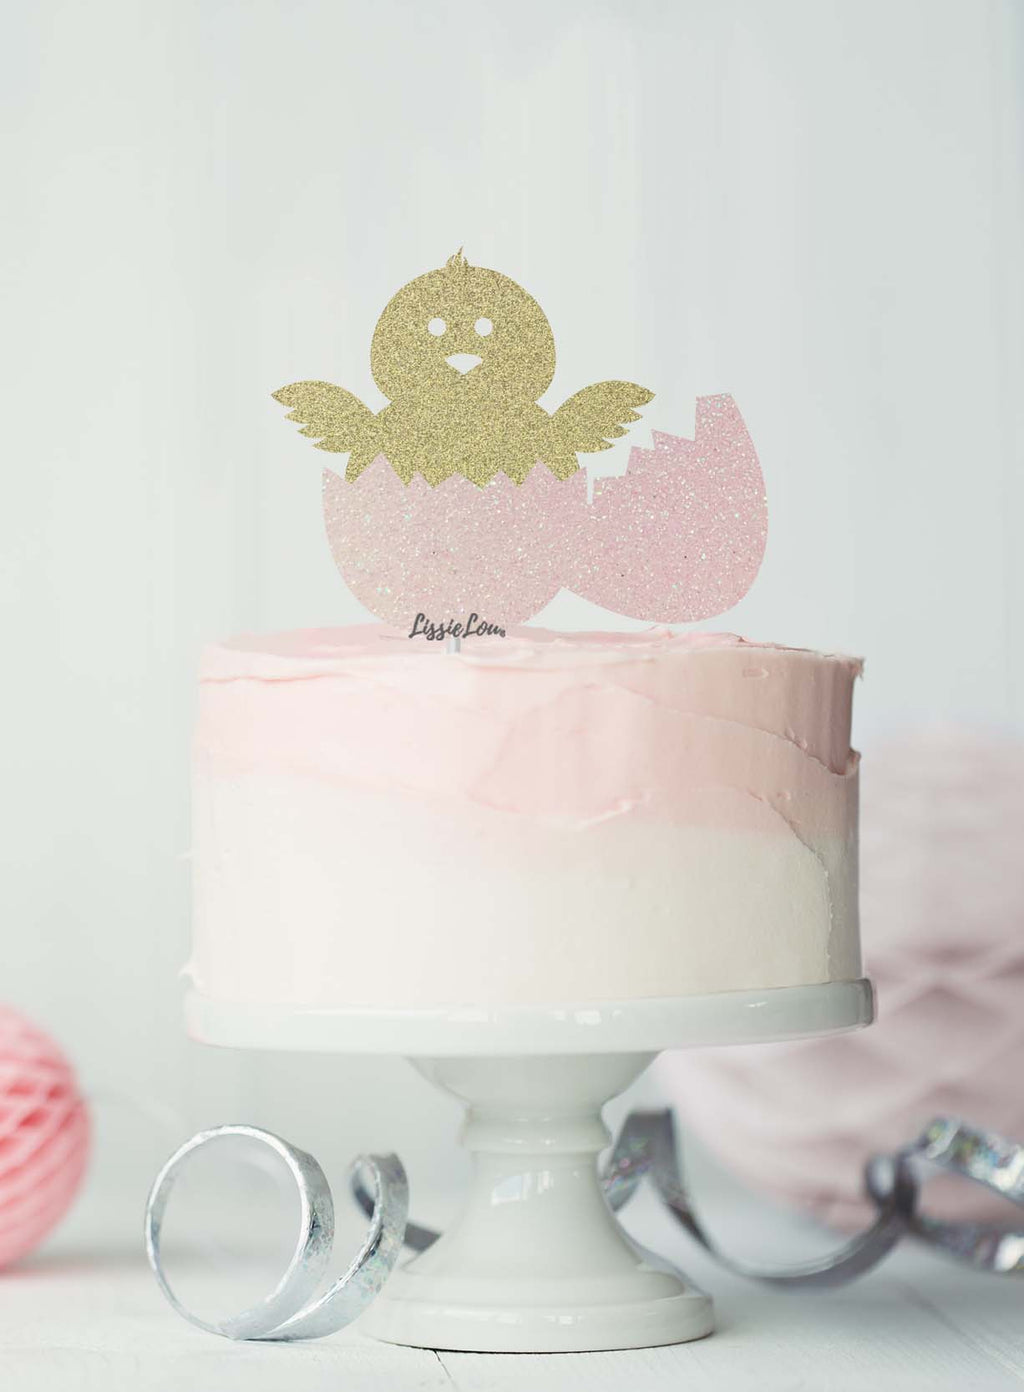 Cute Easter Chick and Egg Cake Topper Glitter Card Gold and White